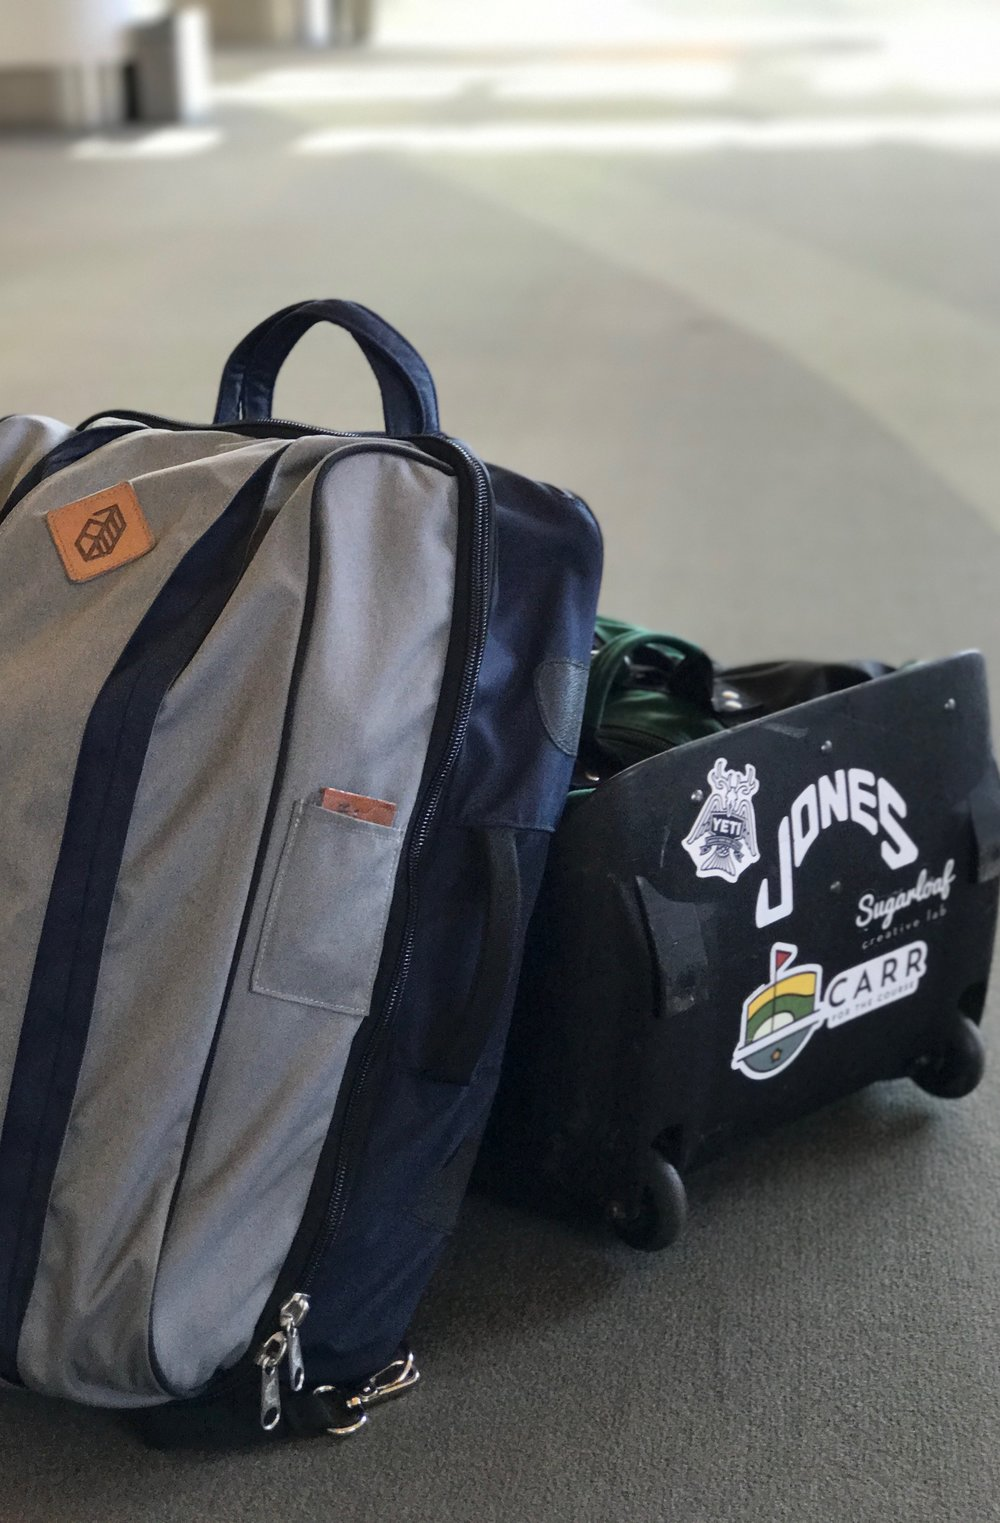 Have clubs, will travel with the Jones Weekender.